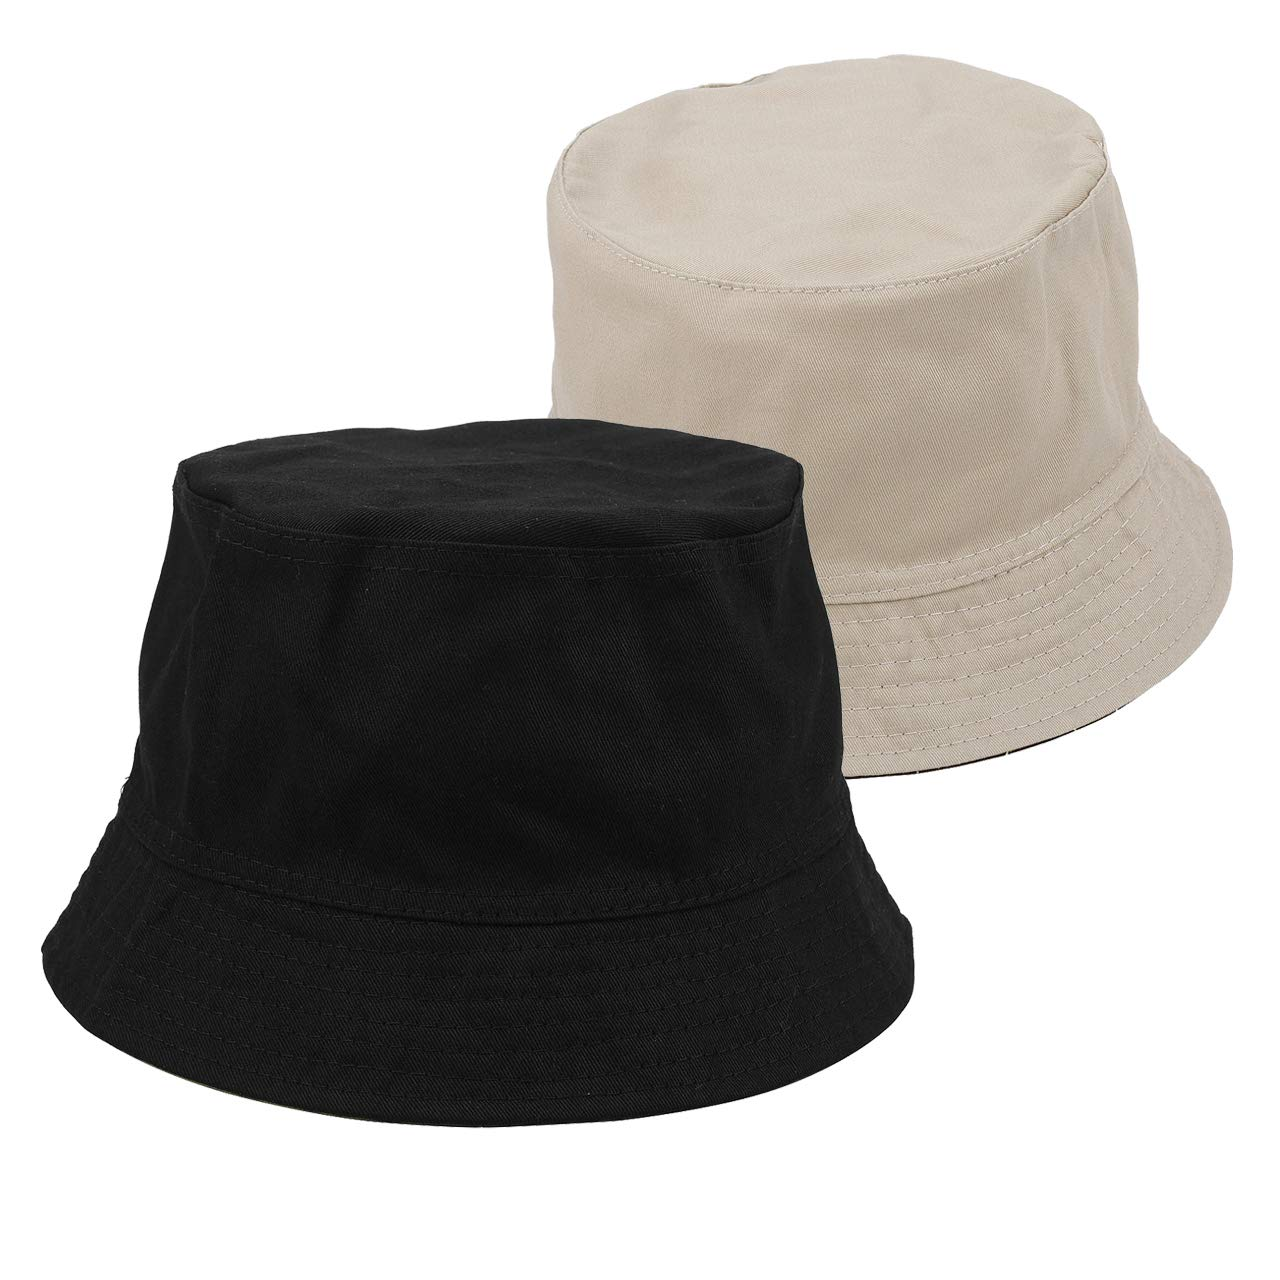 48a7a63b48f Amazon.com  Faleto Bucket Hat Boonie Hat Wide Brim Fishing Hat Reversible  Cotton Casual Plain Cap (Black)  Clothing